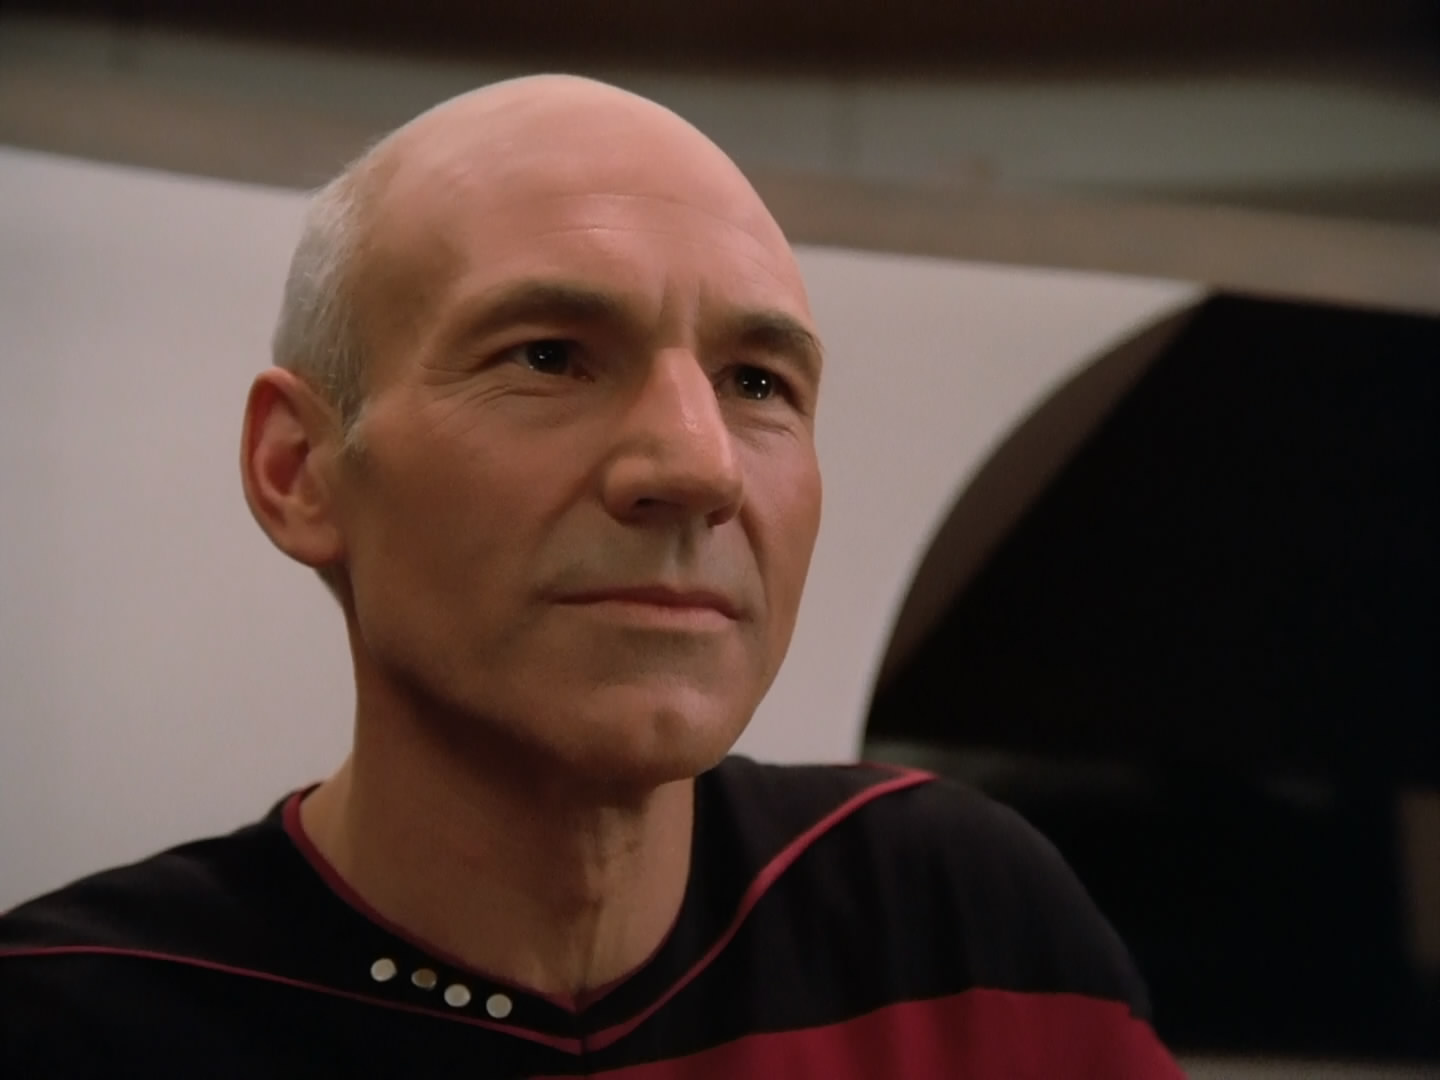 Jean-Luc_Picard,_Encounter_at_Farpoint